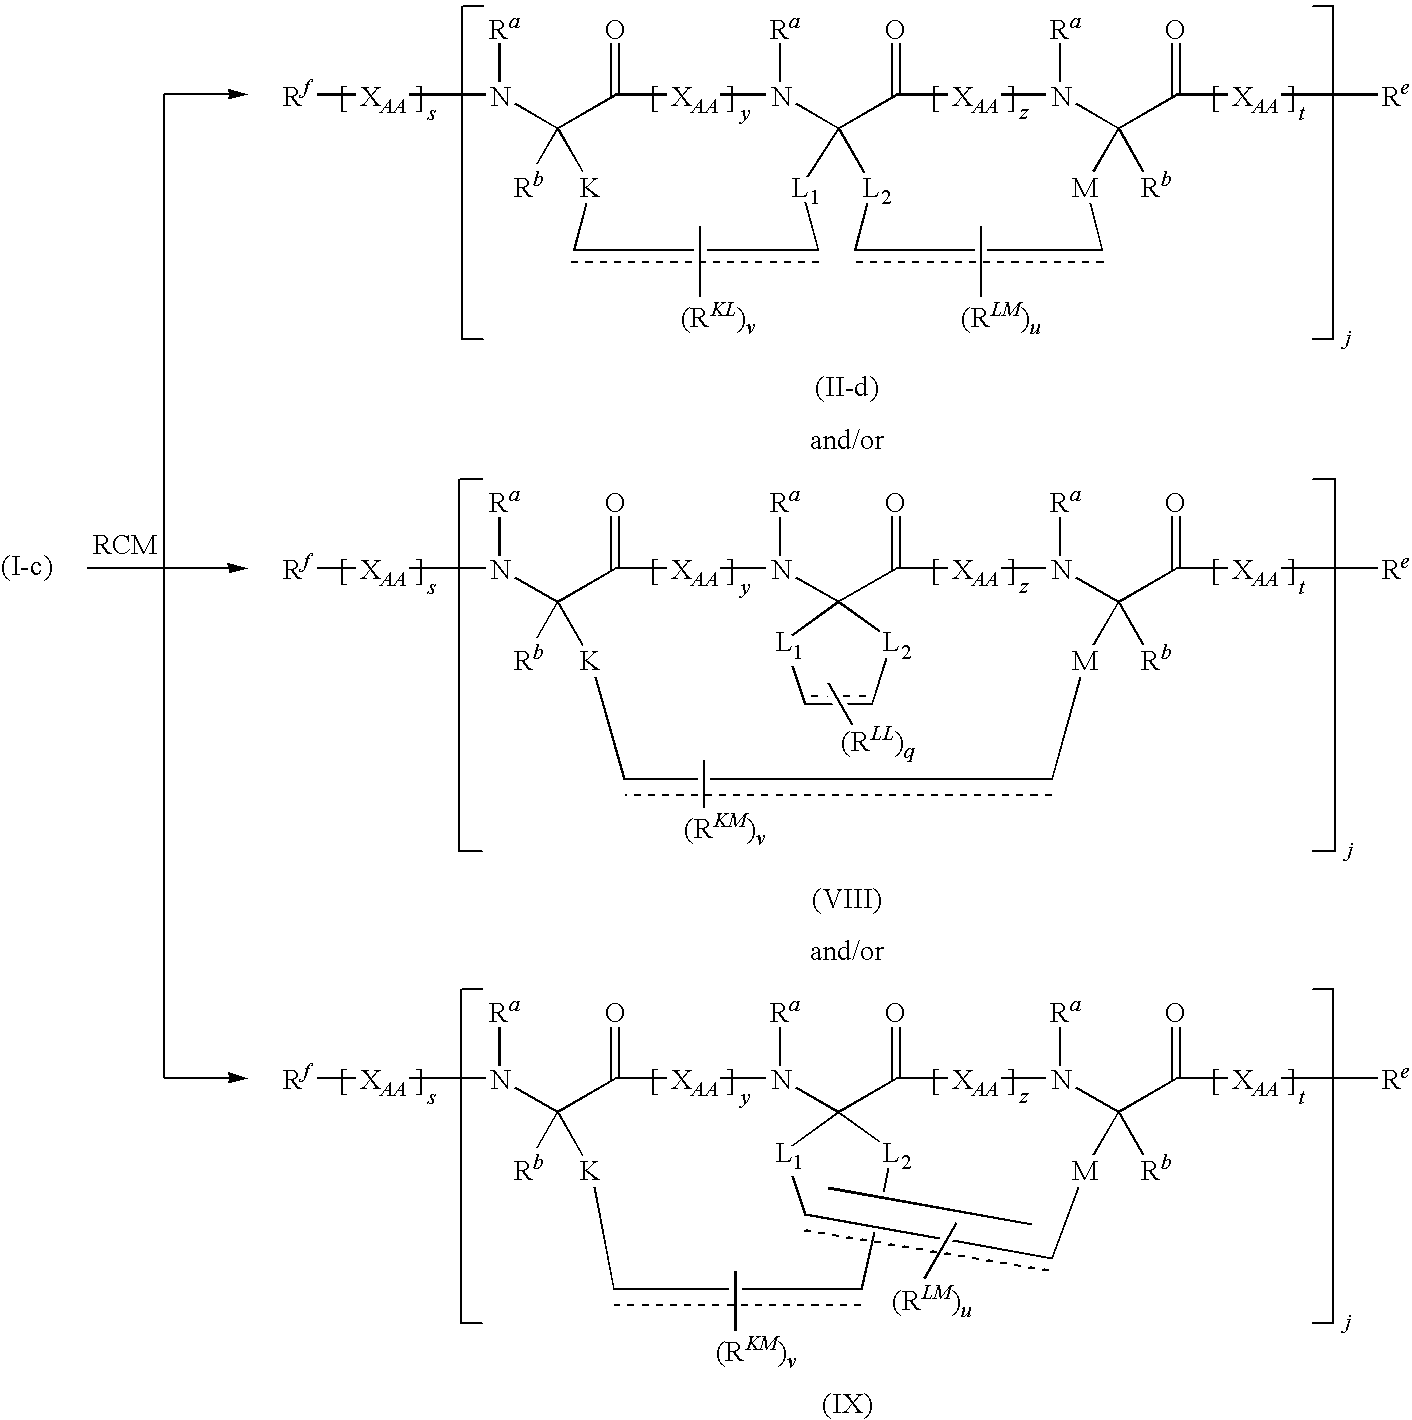 US20100184645A1 - Stitched polypeptides - Google Patents